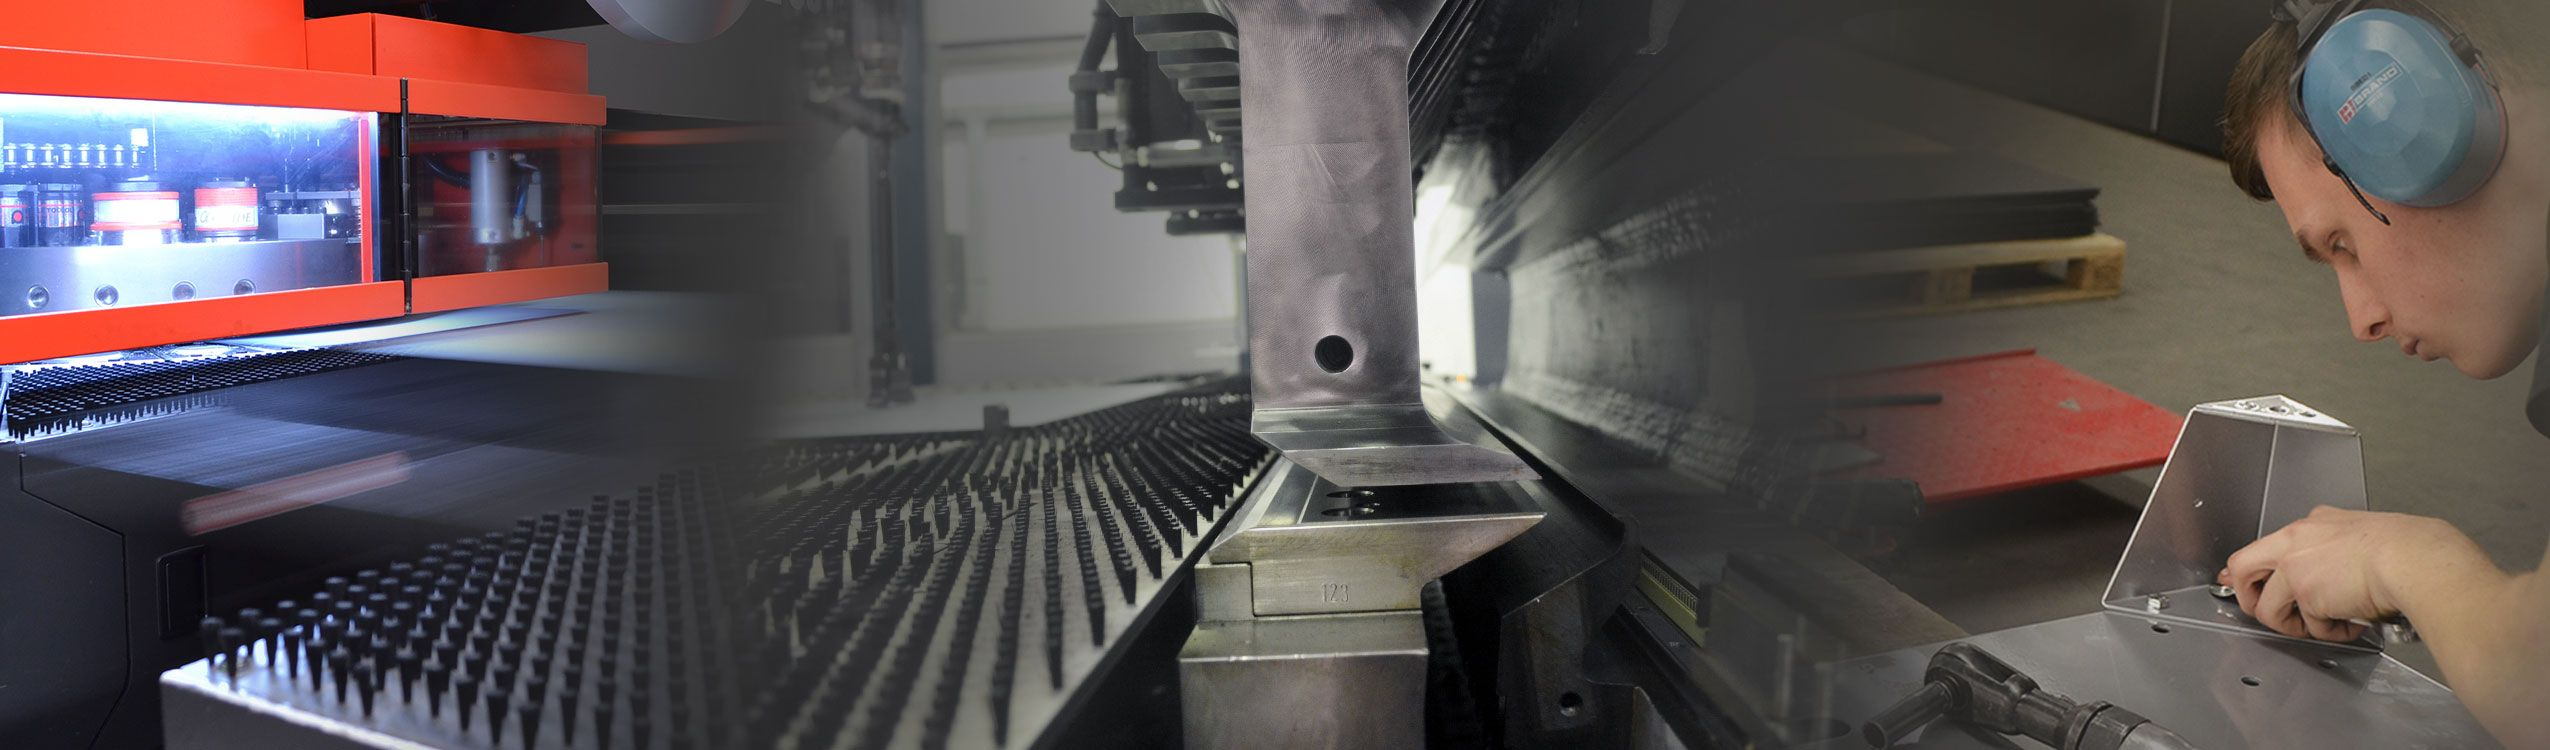 About Dura Manufacturing Steel Fabrication